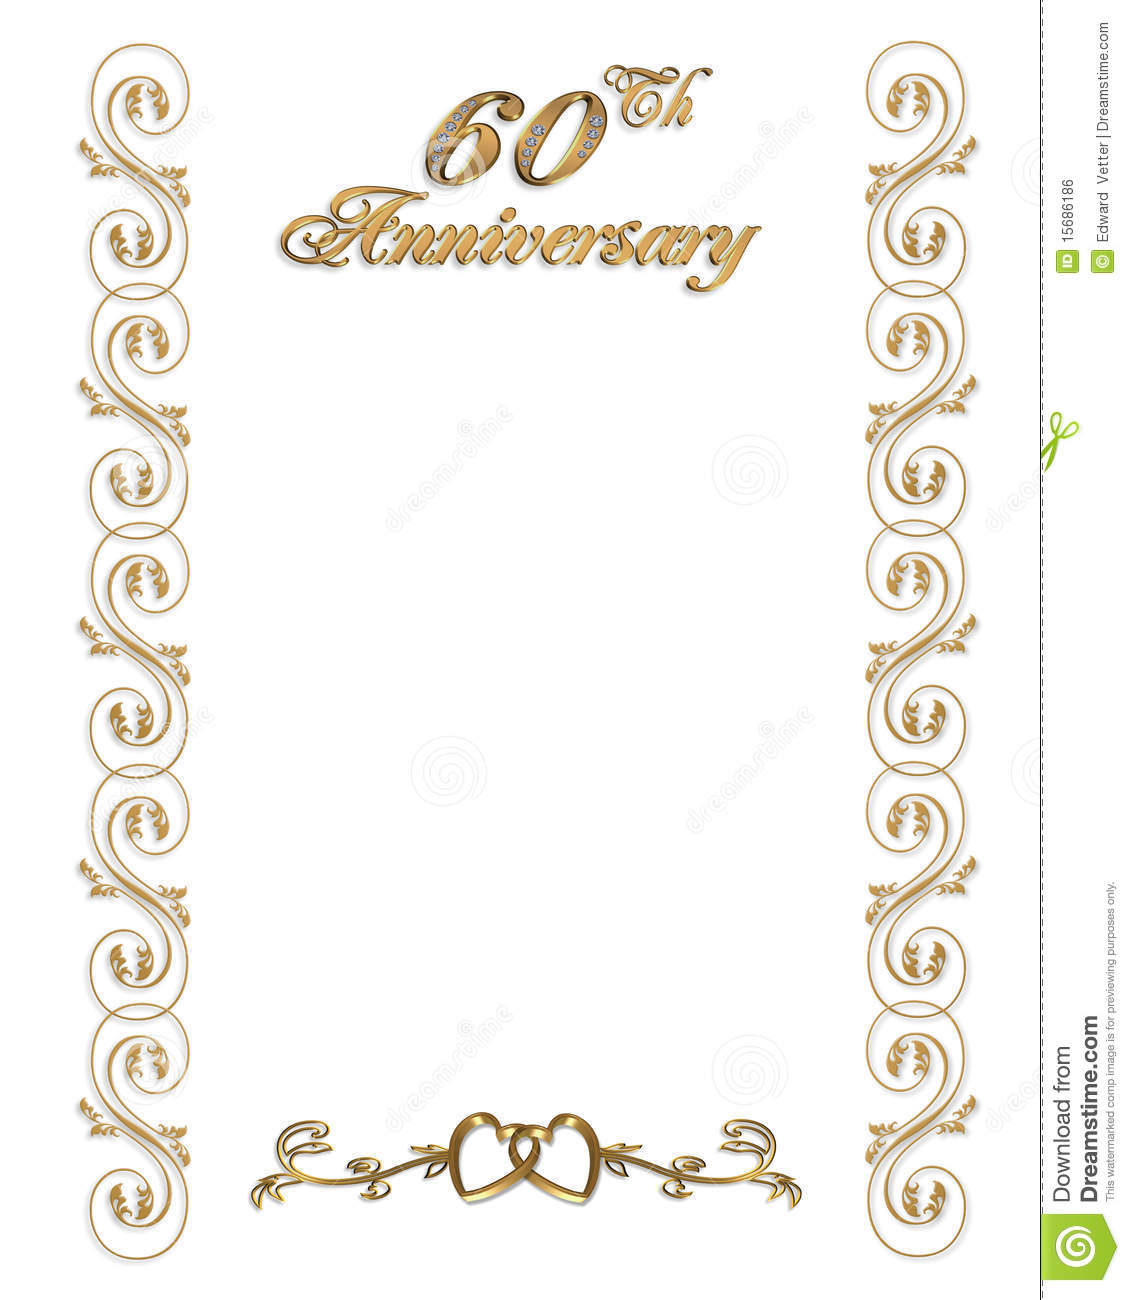 wedding anniversary elegant formal invitation template background wedding anniversary elegant formal invitation template background